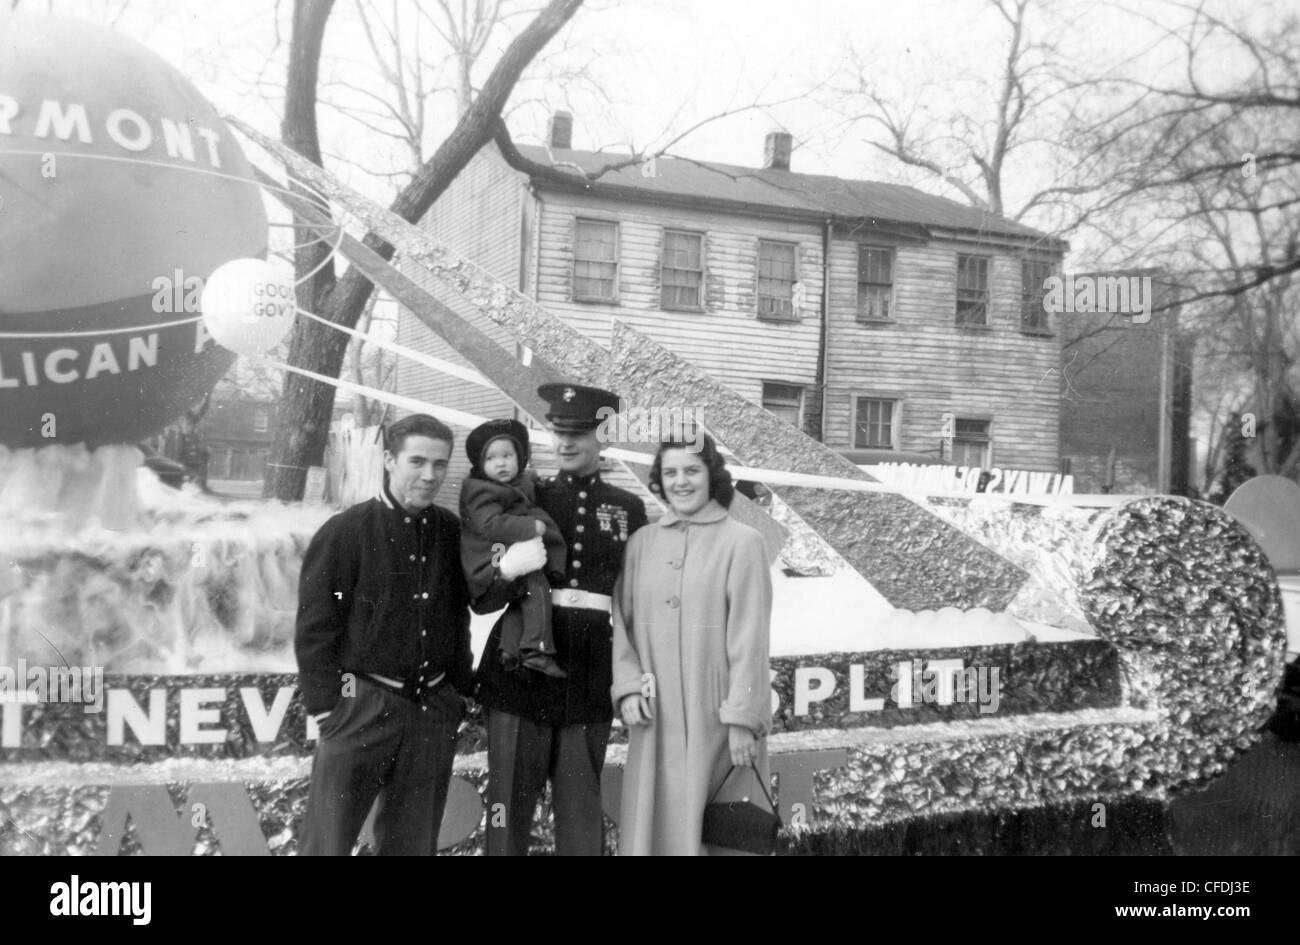 Decorated WWII veteran of the US marines at 1940s parade in Vermont veterans day posing with family - Stock Image